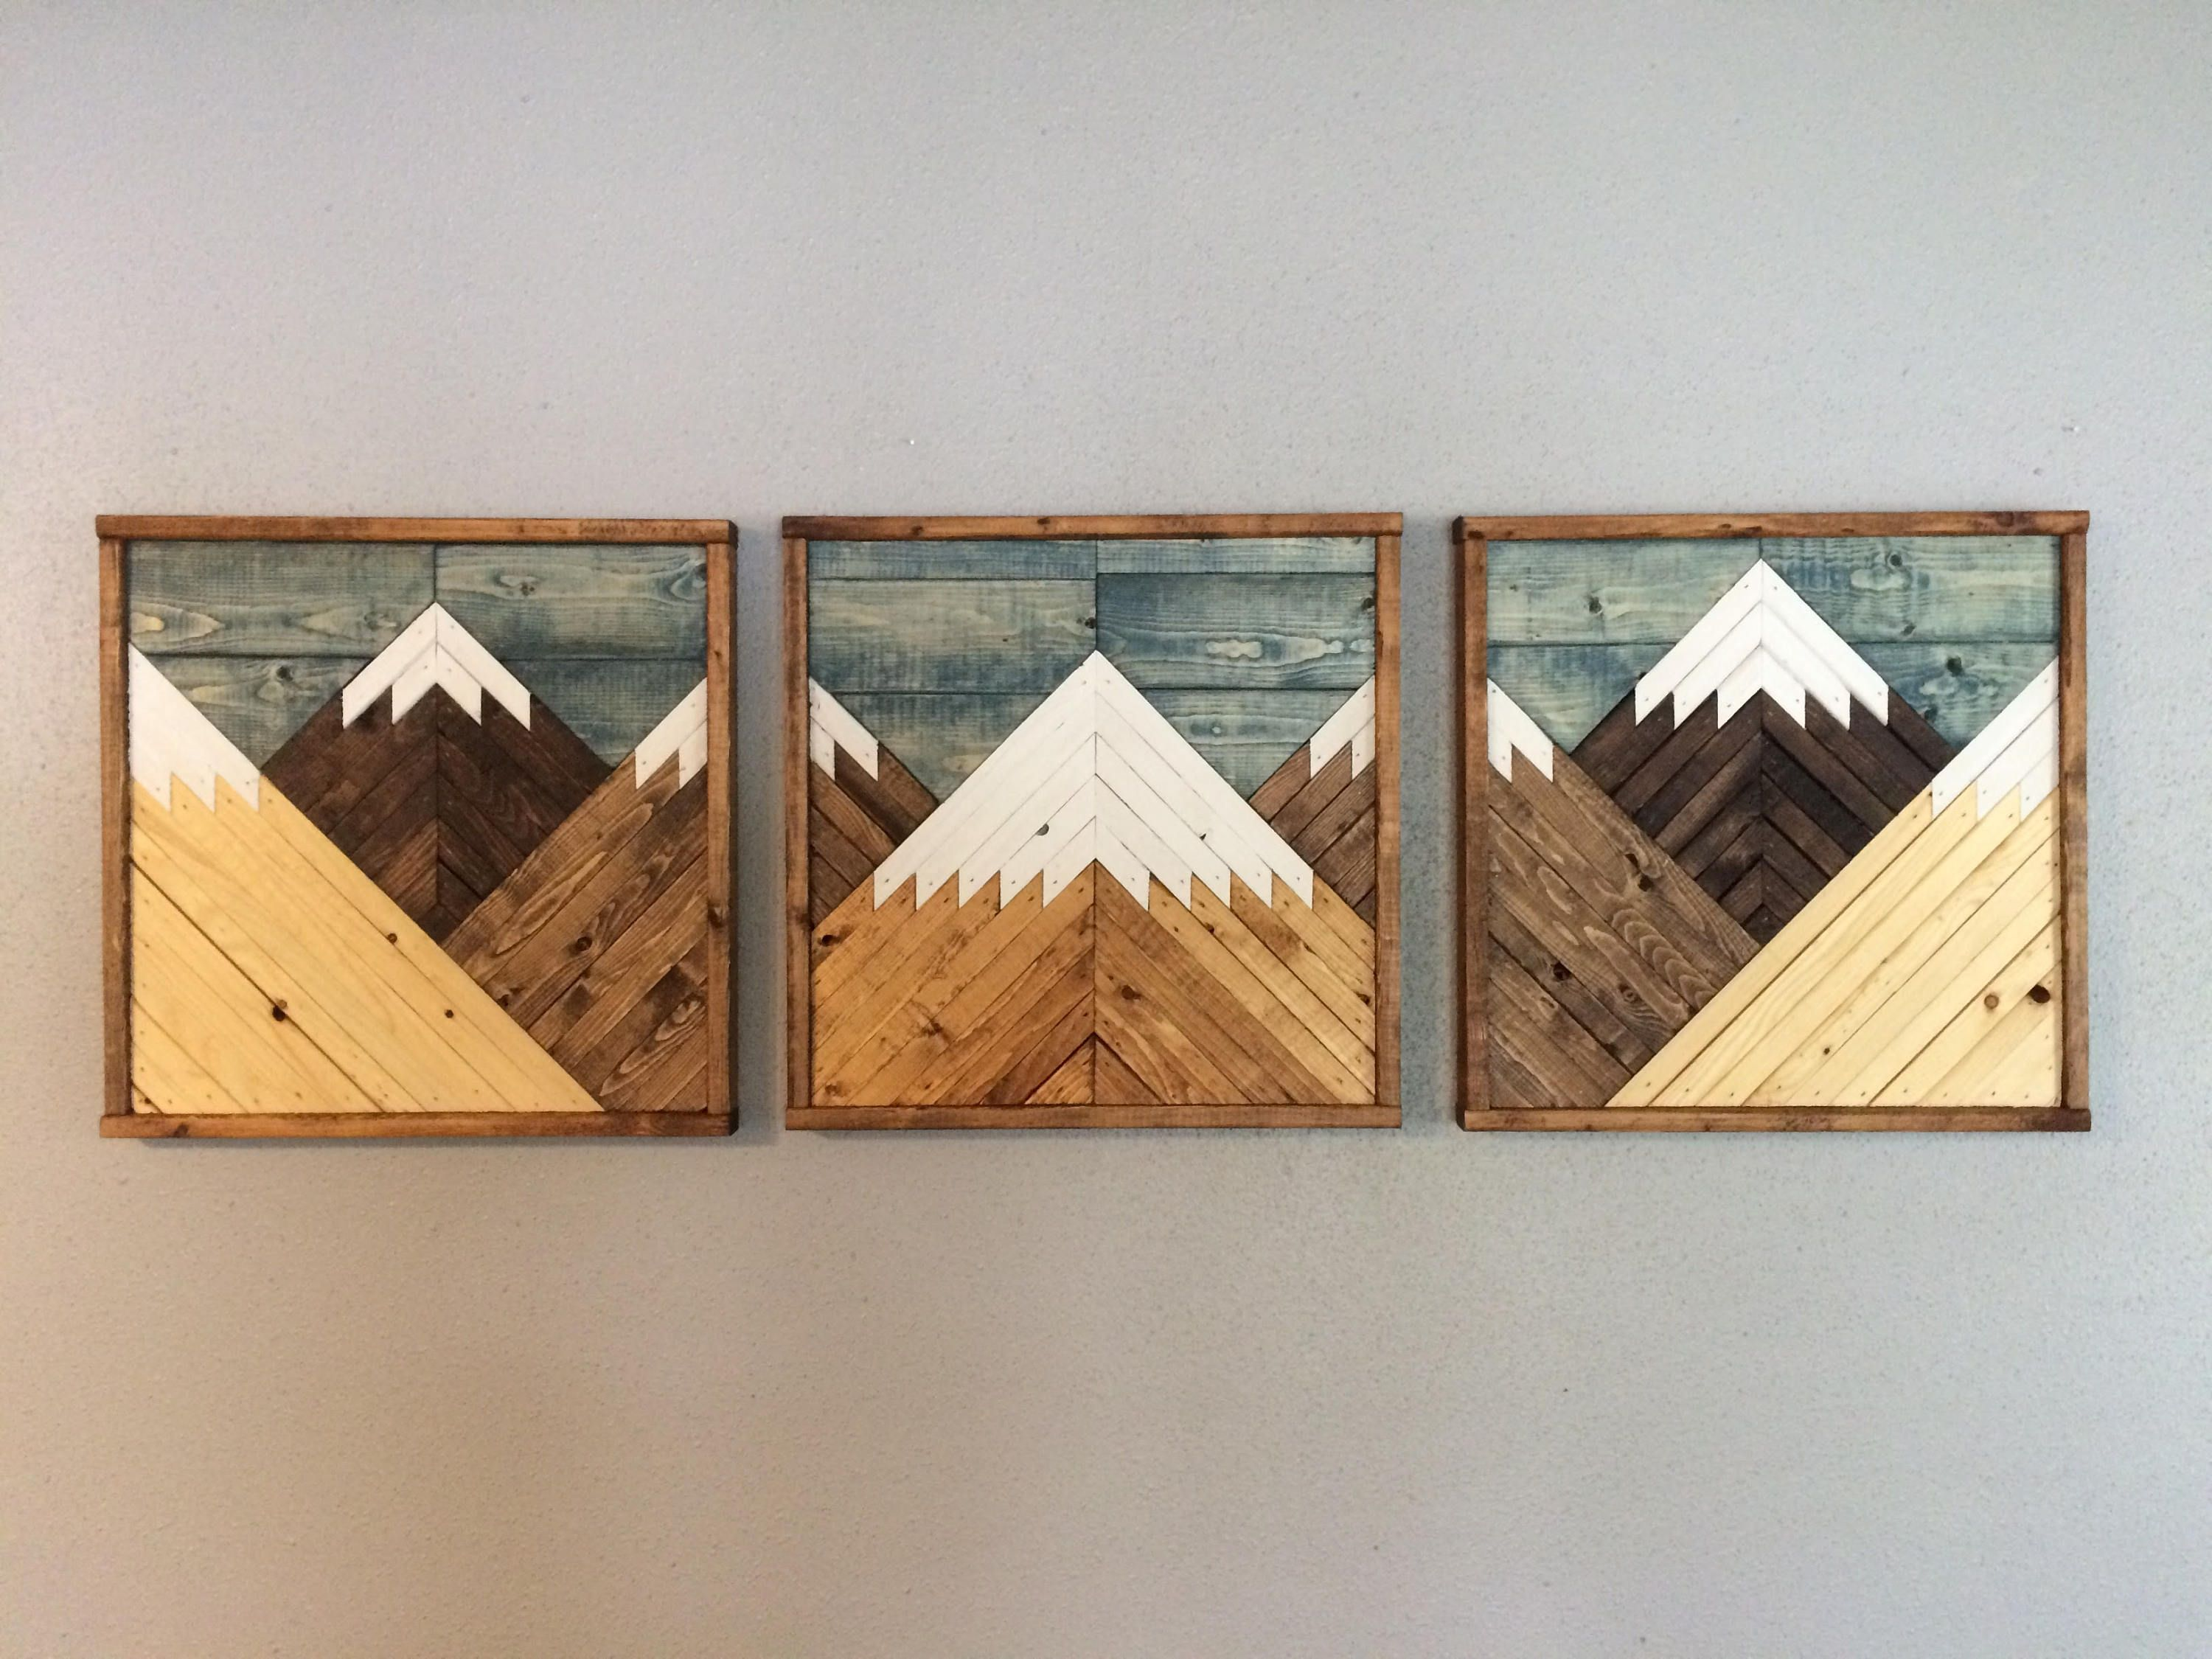 Stained Mountain Tops Set Of 3 Reclaimed Wood Wall Art Wood Etsy In 2021 Mountain Wood Wall Art Reclaimed Wood Wall Art Wood Wall Art